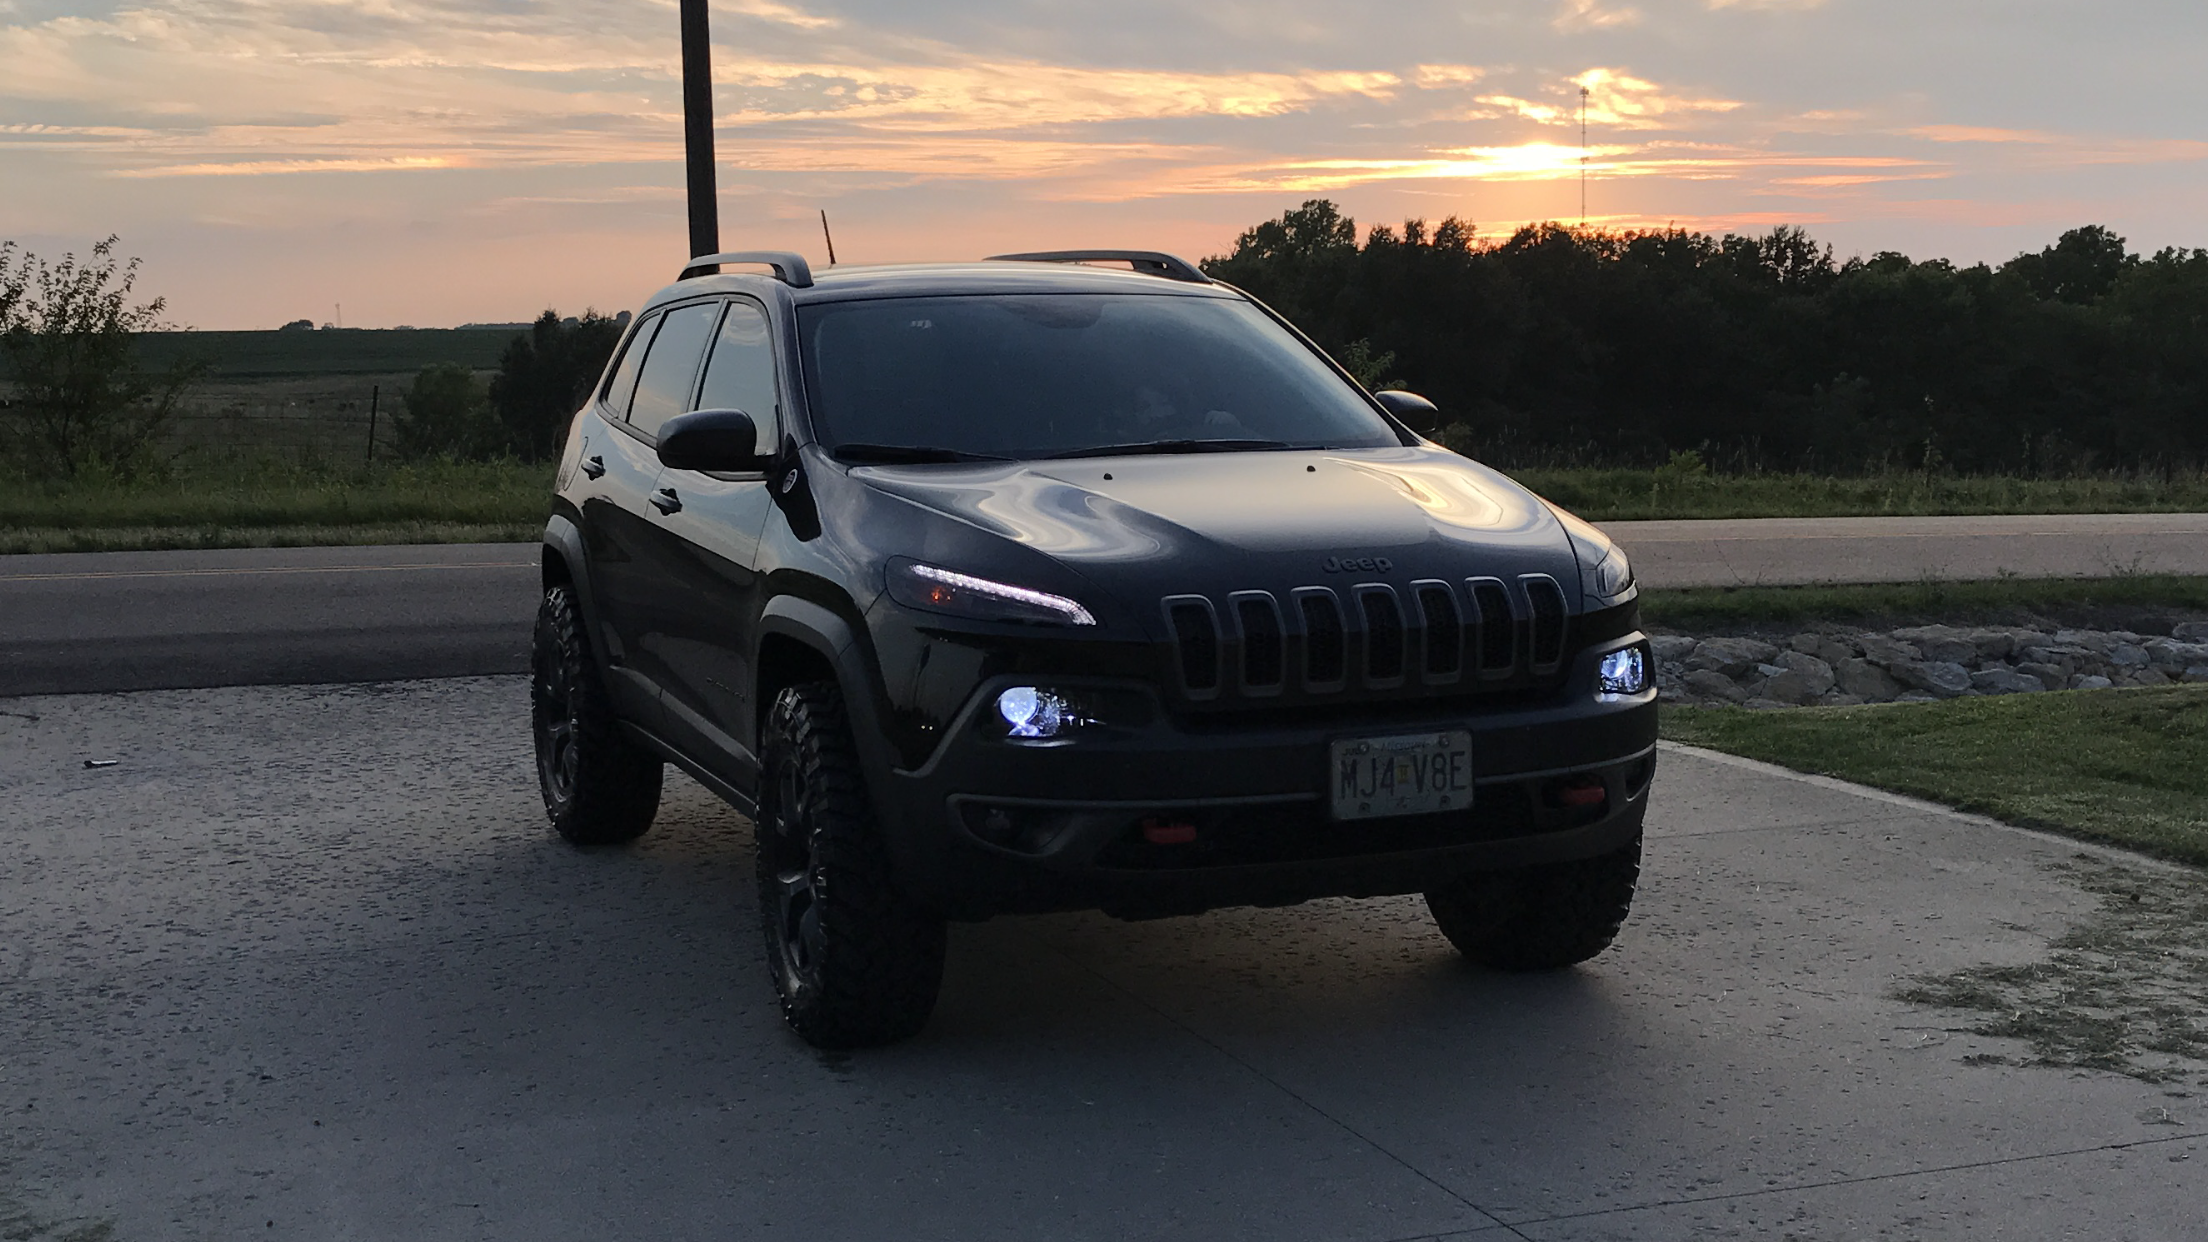 Pin By Matt Kovac On Jeep Cherokee Trailhawk Jeep Cherokee Trailhawk Cherokee Car Jeep Cherokee